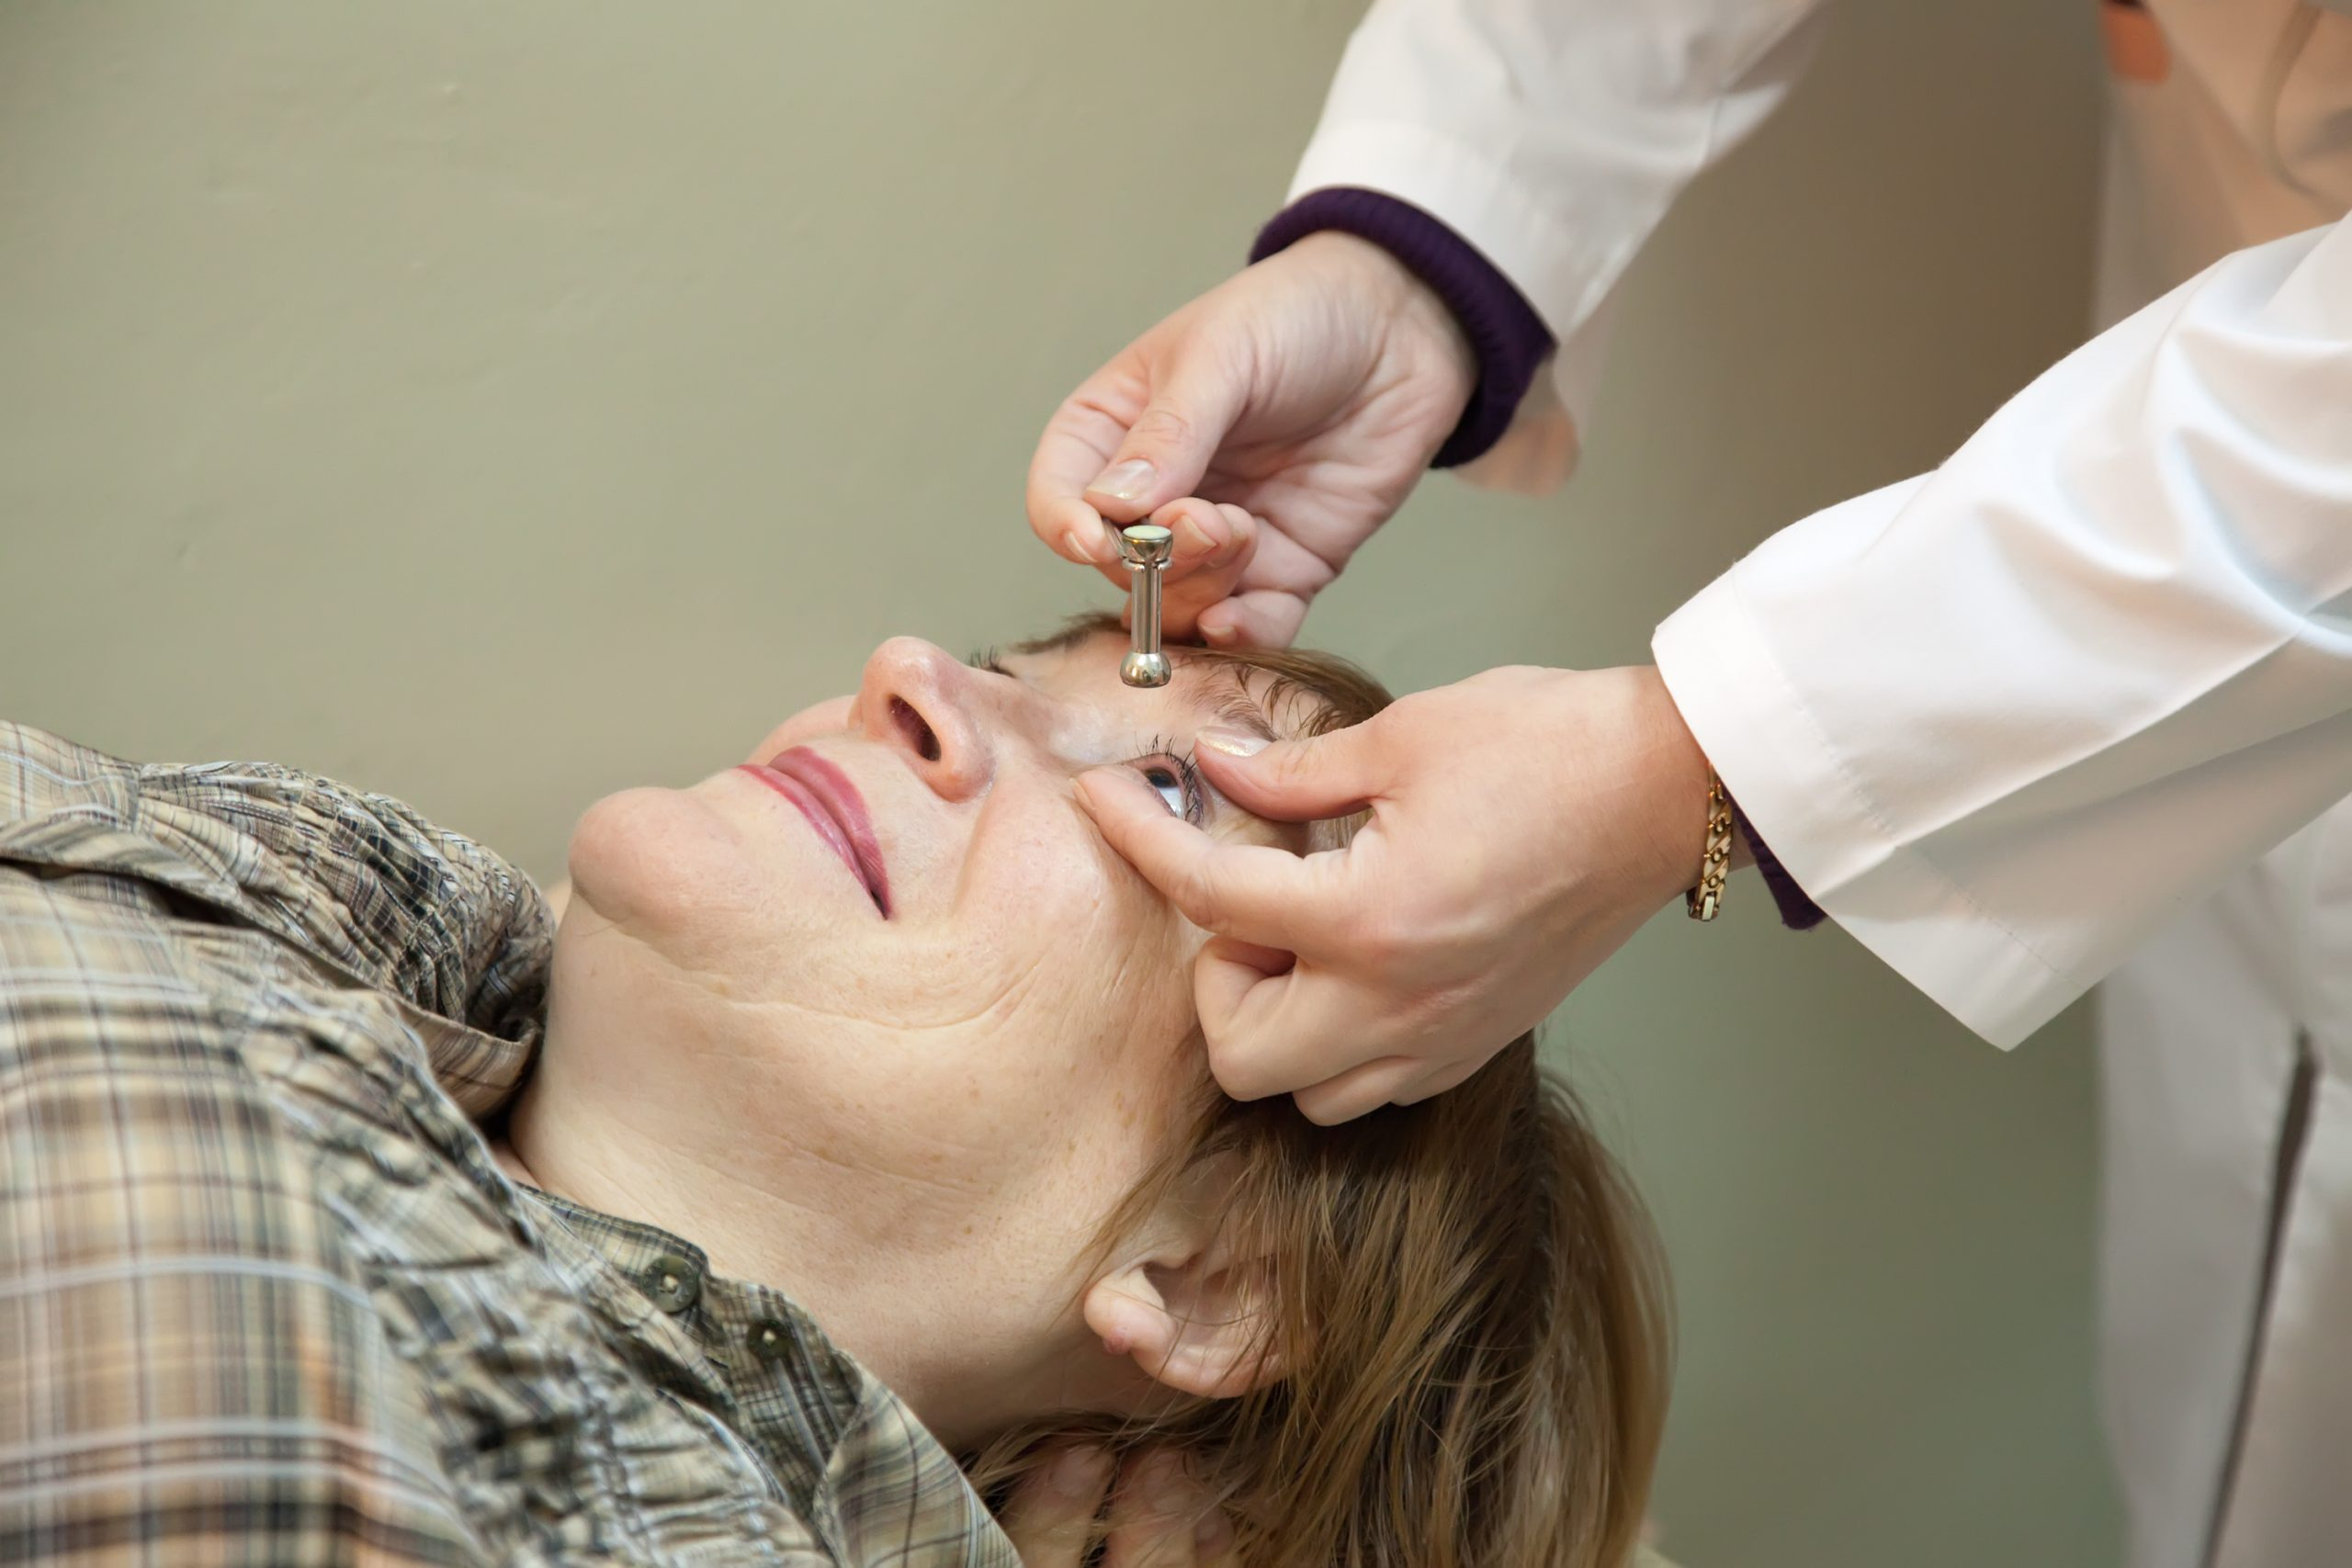 Normal tension glaucoma - Low Vision Aids Blogs